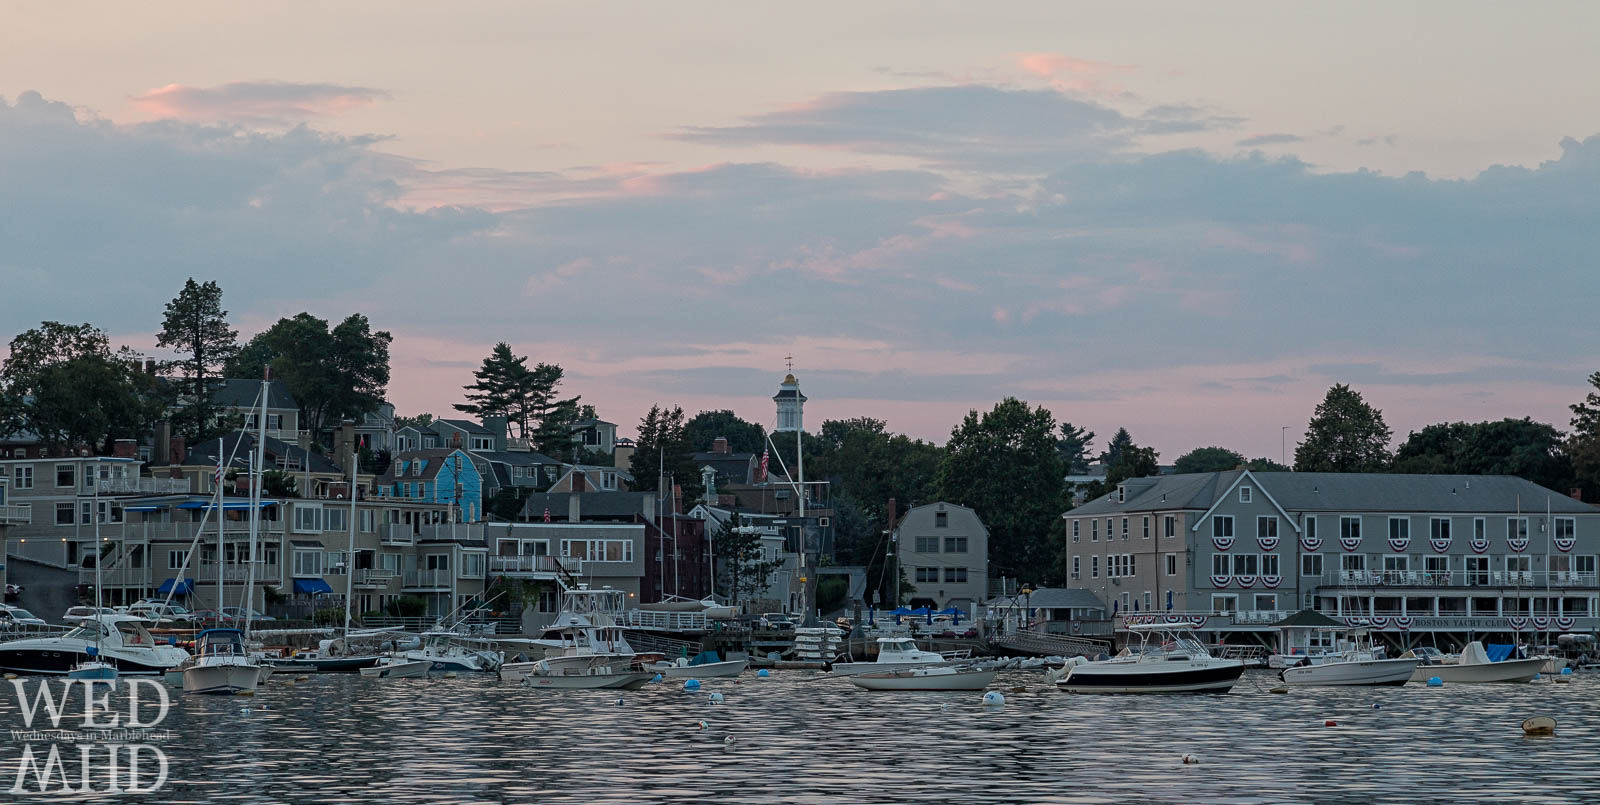 The Boston Yacht Club, Grace Community Church and houses on Gregory Street seen at the end of a Summer day